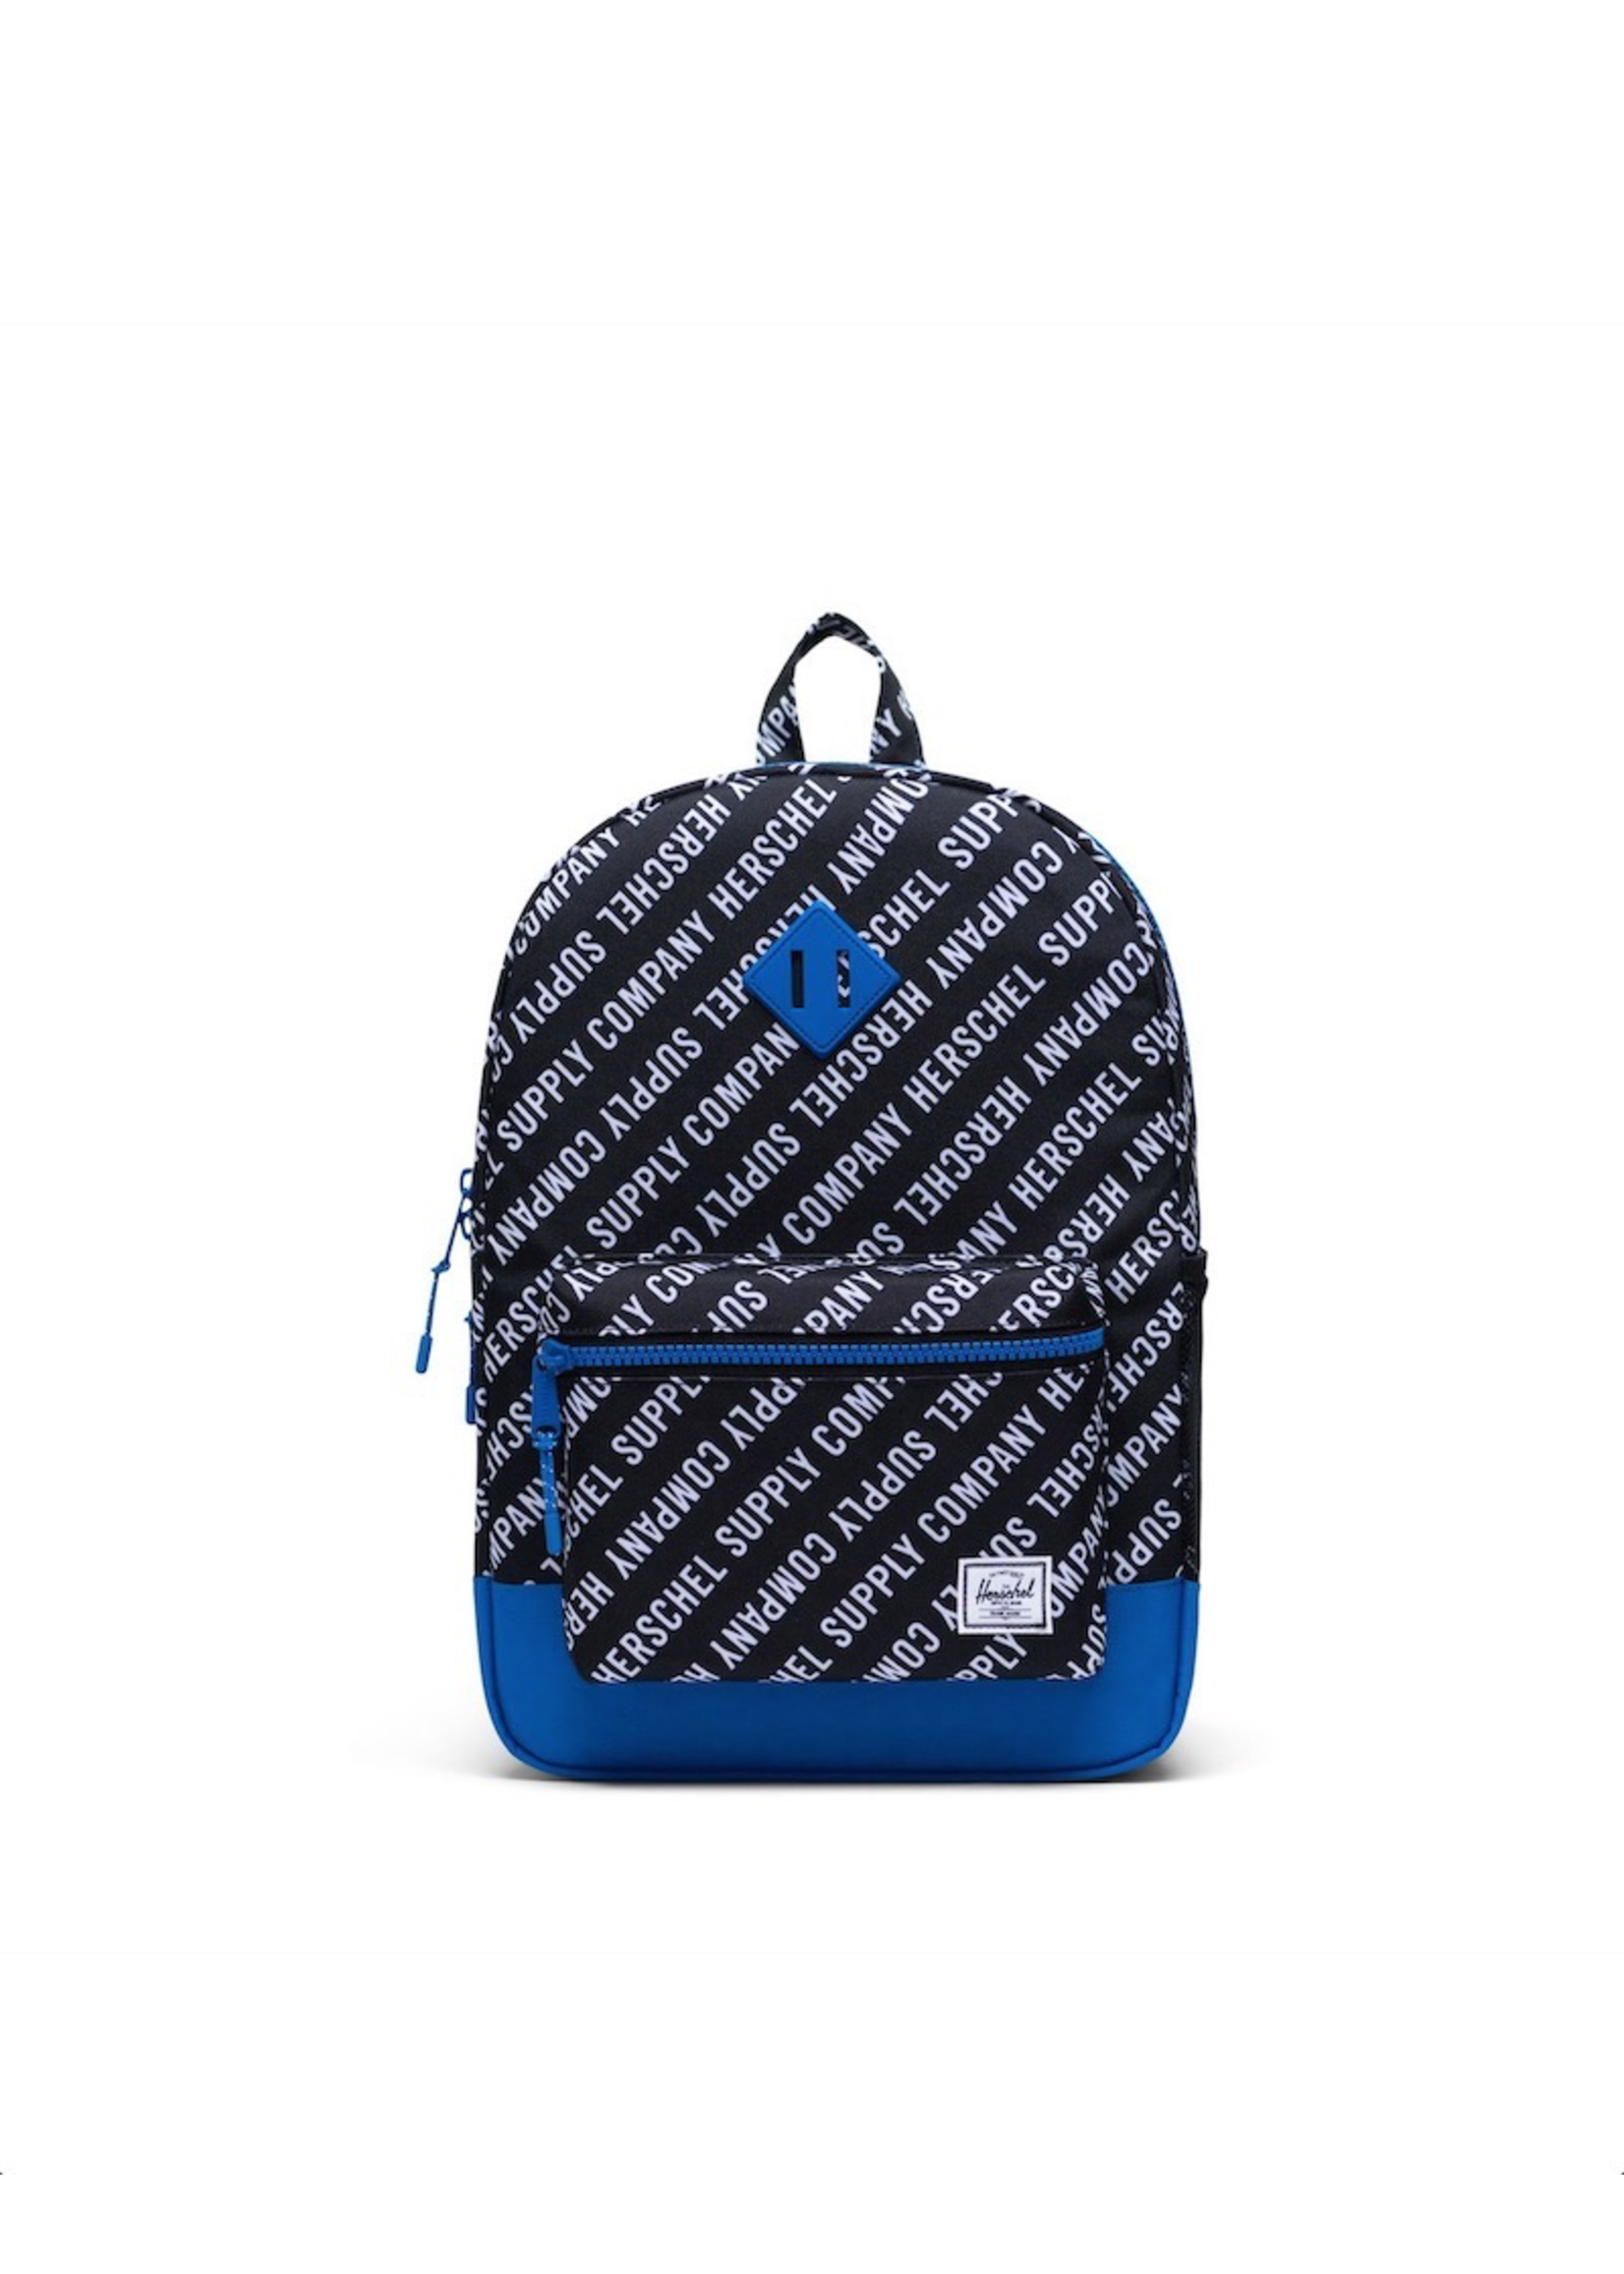 Herschel Supply Co. Herschel Supply, Heritage Backpack   Youth XL, Roll Call Black/White/Lapis Blue, 22L